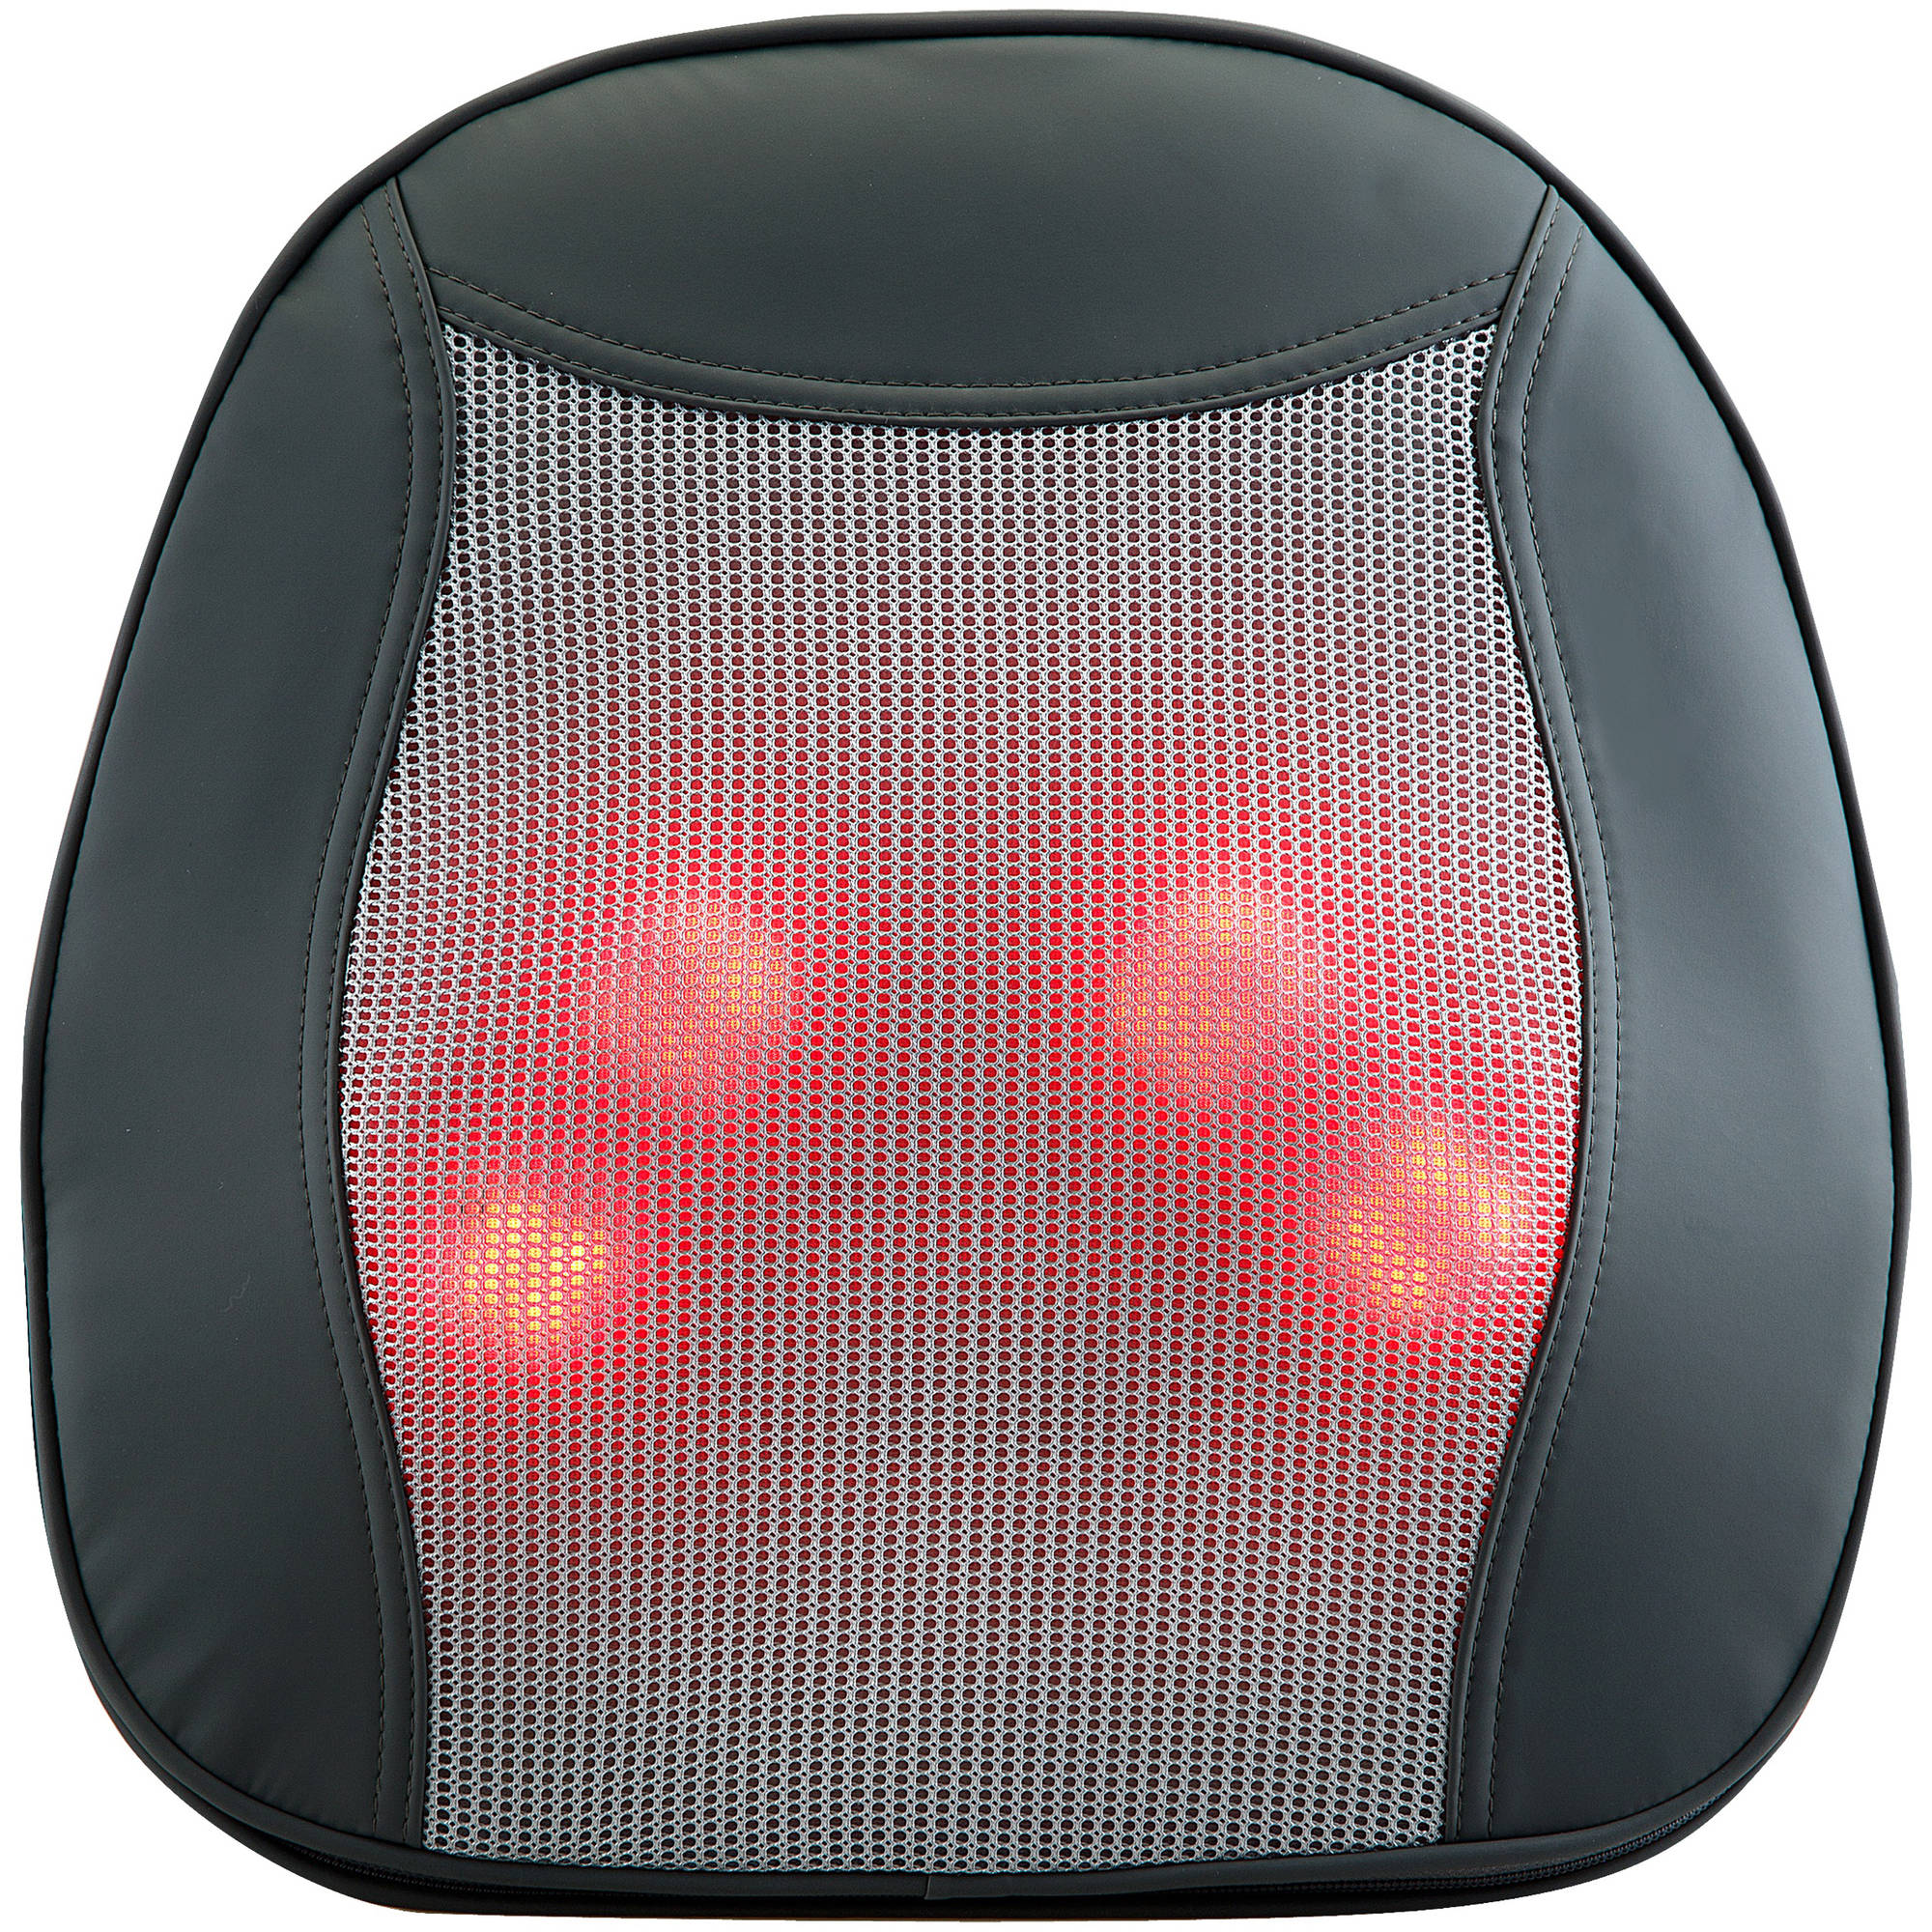 Relaxzen Lower Back Shiatsu Massager with Heat